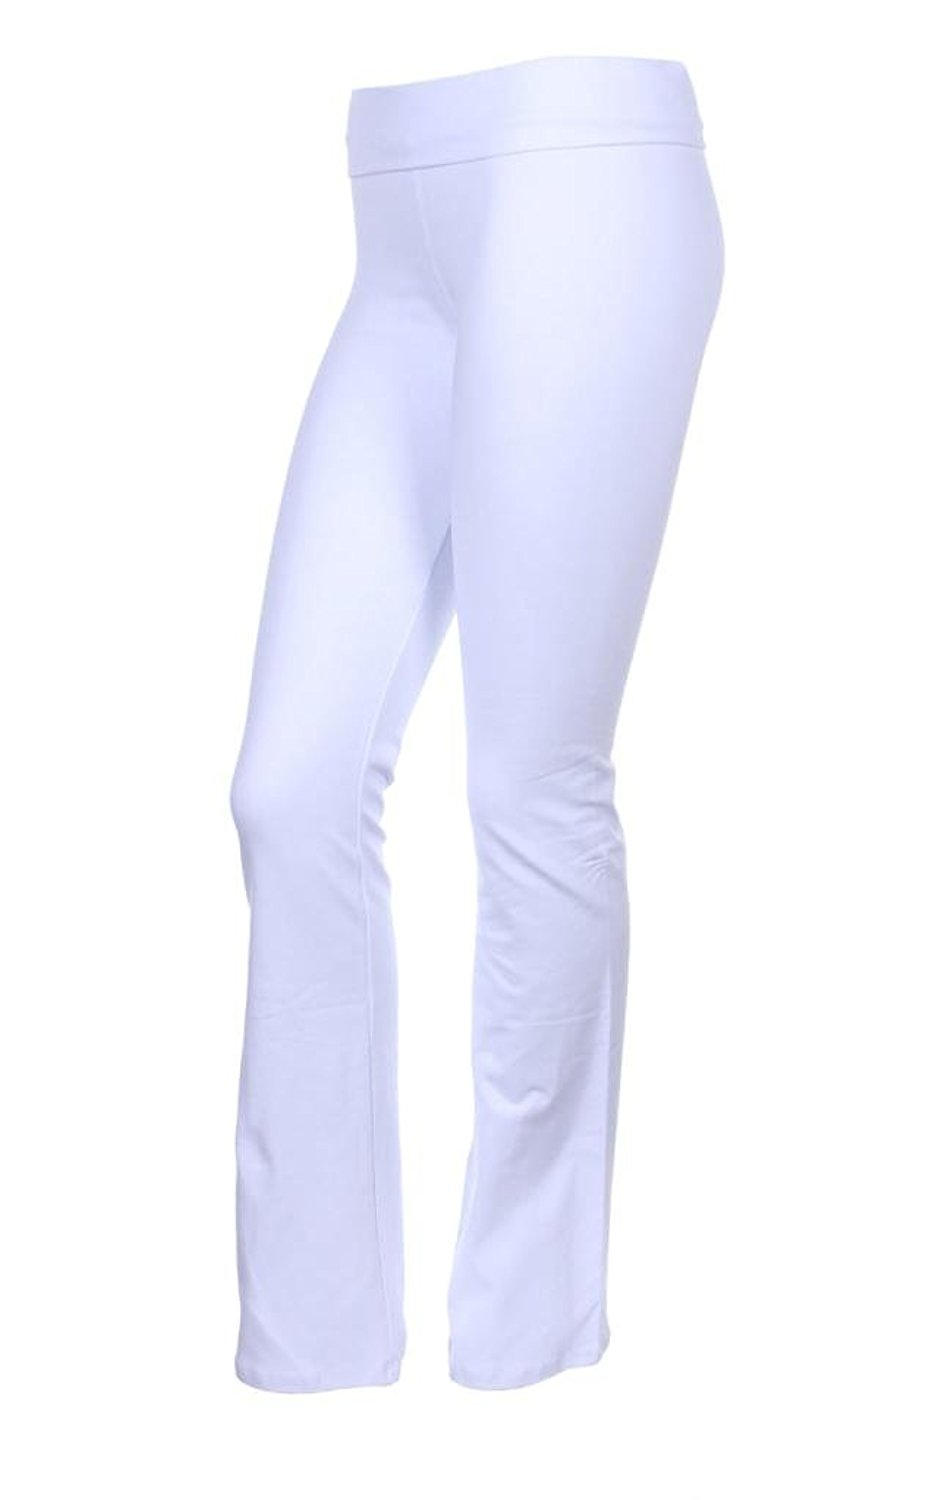 97a71befb0a28 T-Party Thick Cotton Yoga Pants with Fold Over Waistband - Tall Long Flare  Bootcut Legs - Not See Through